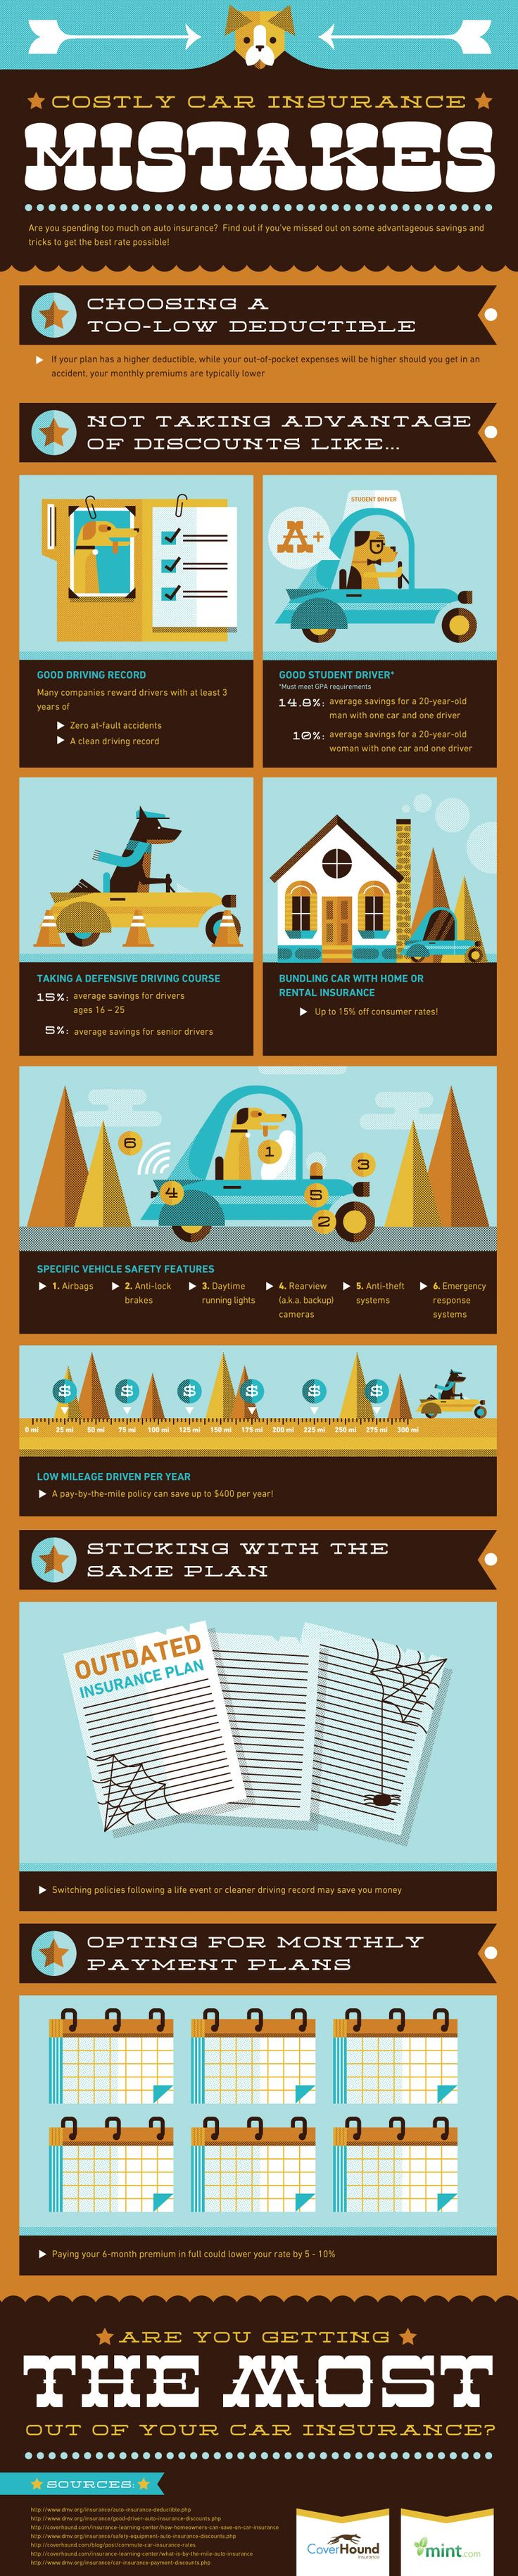 Costly Car Insurance Mistakes - Find how to lower your car insurance premium with this infographic by Mint.com